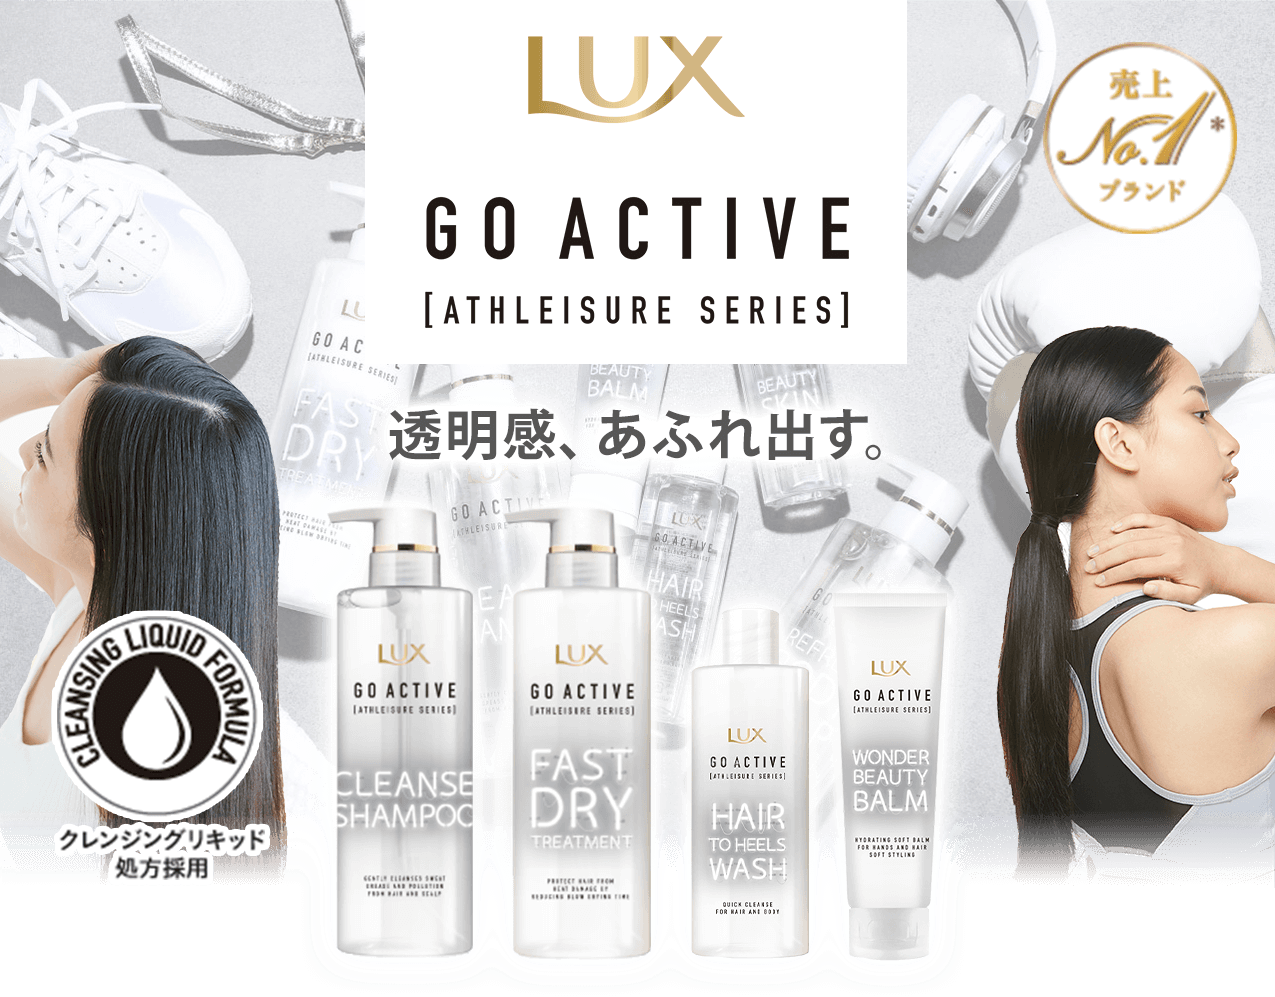 透明感あふれ出す。LUX GO ACTIVE [ATHLEISURE SERIES]